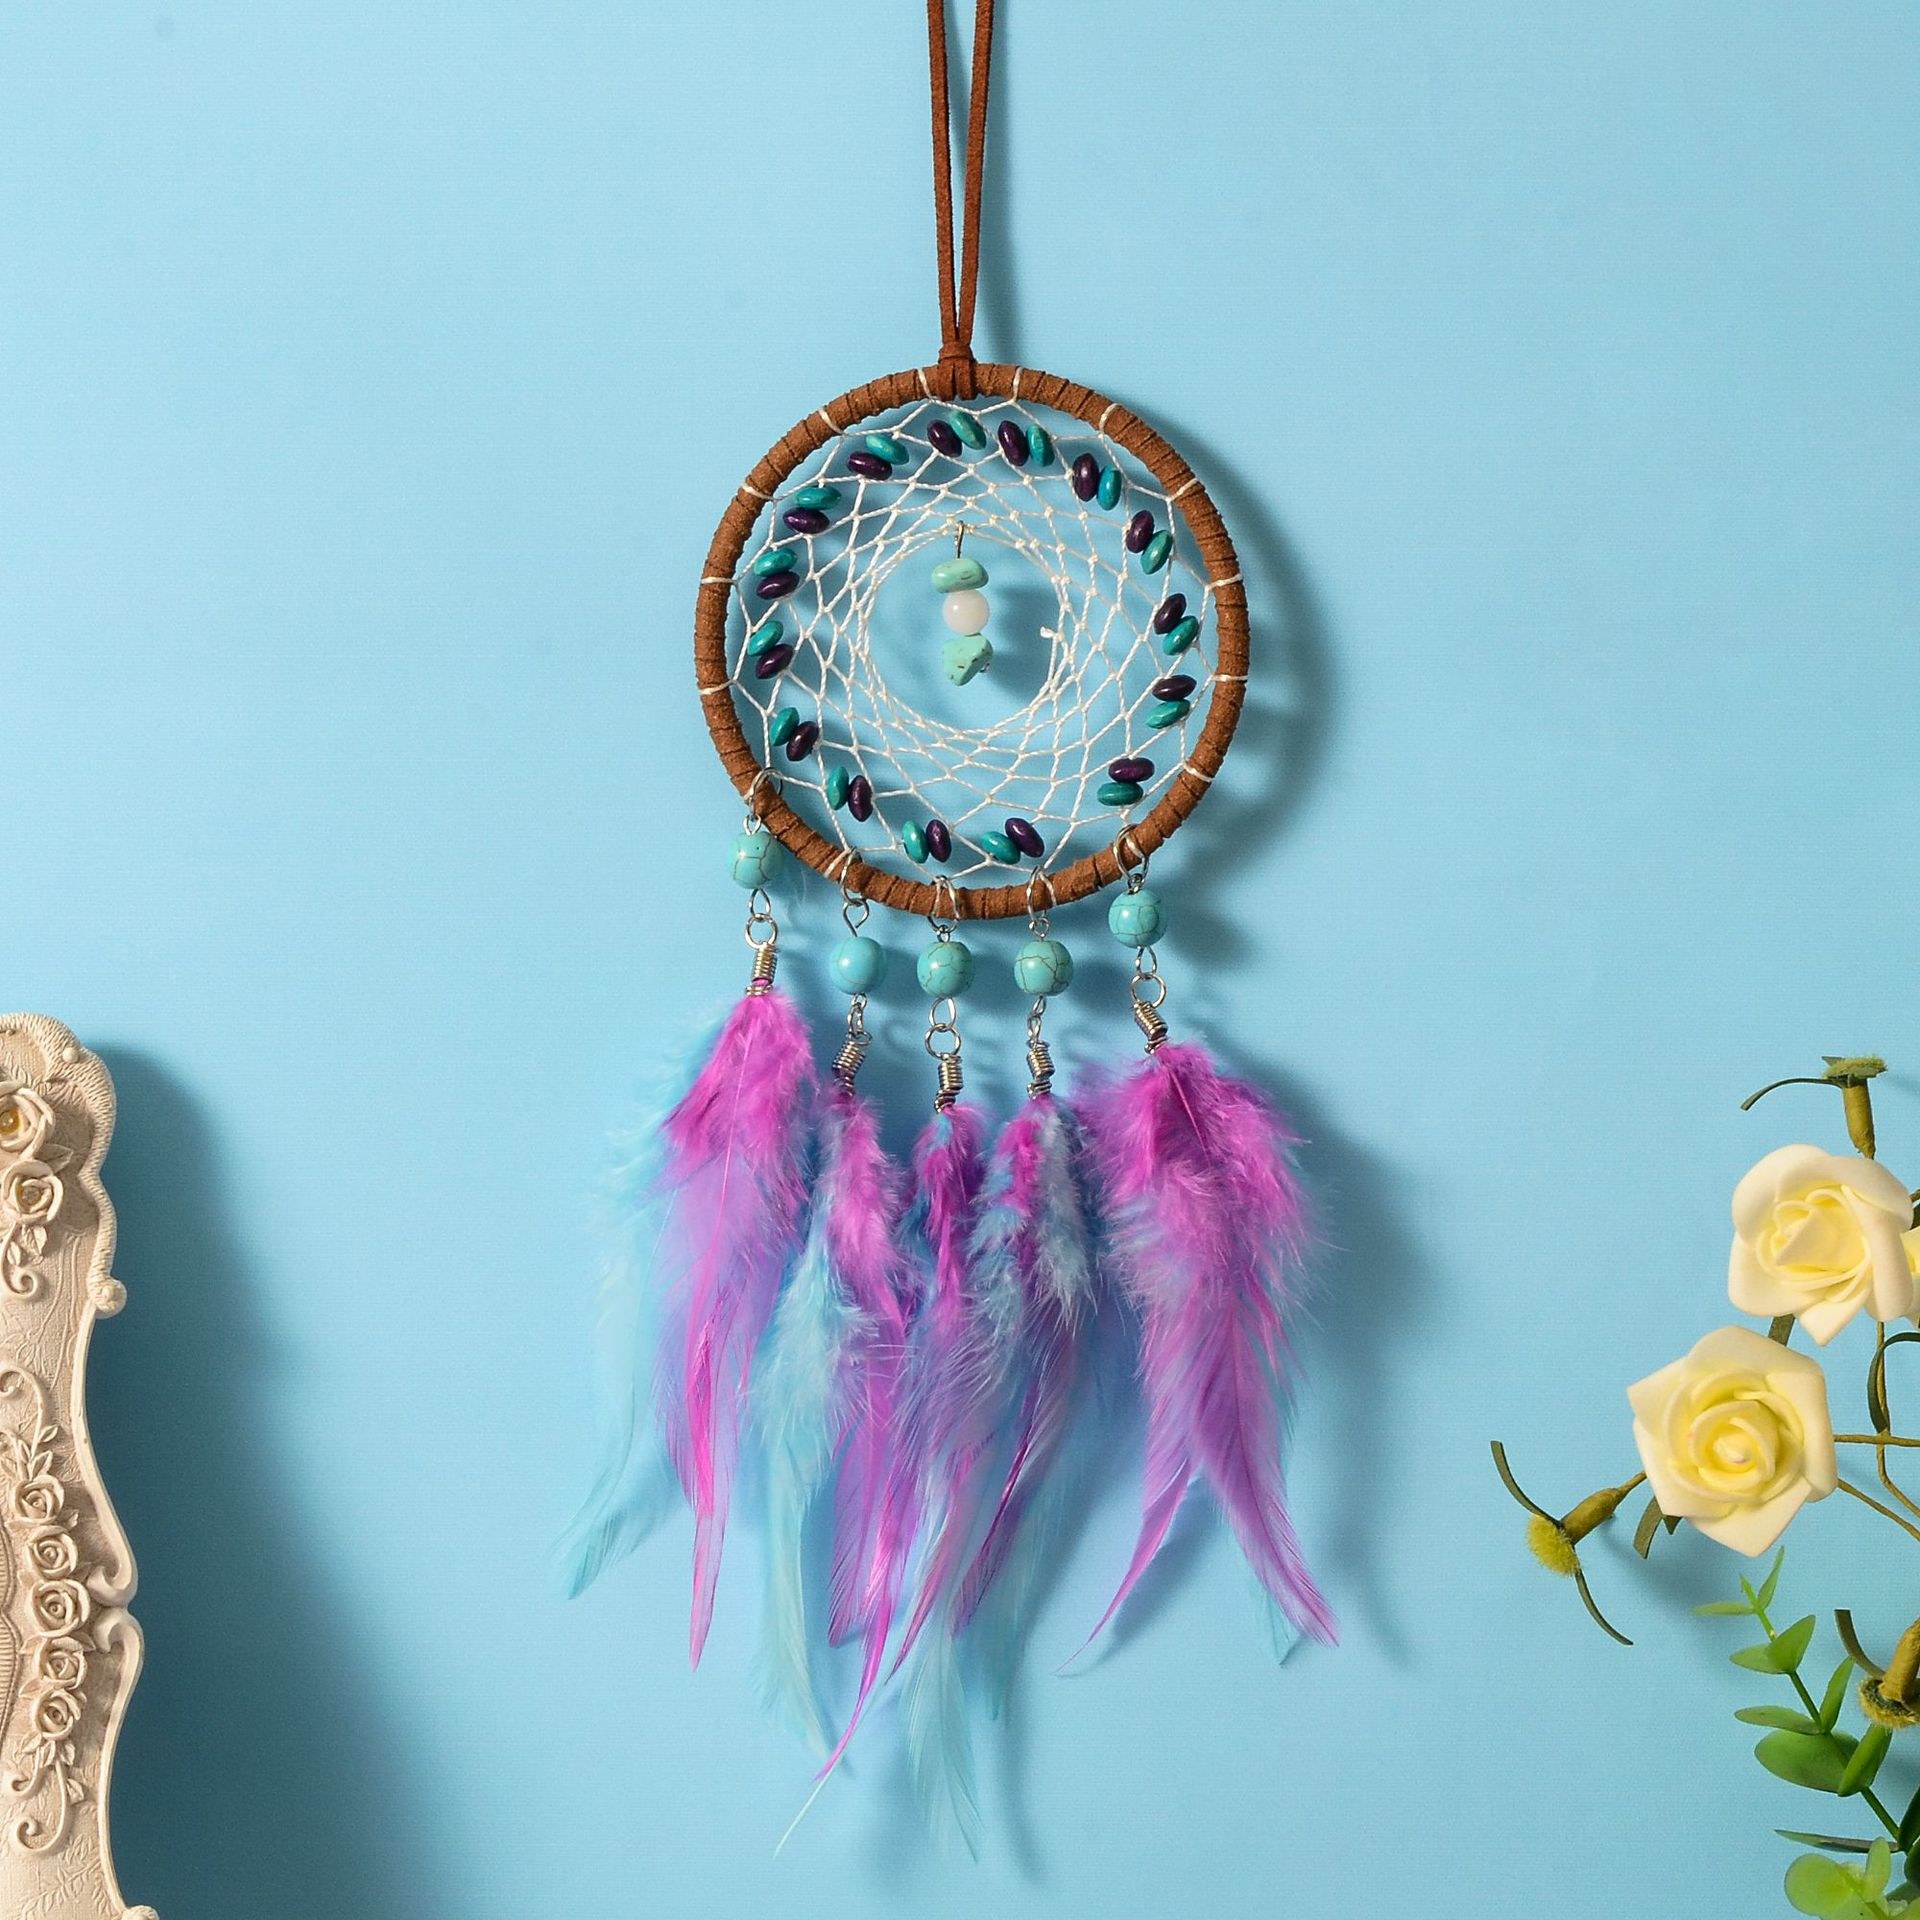 Turquoise Dream Catching Net Handicraft Pendant Graduation Gift Garden Decoration Room Decoration Accessories Dream Catcher